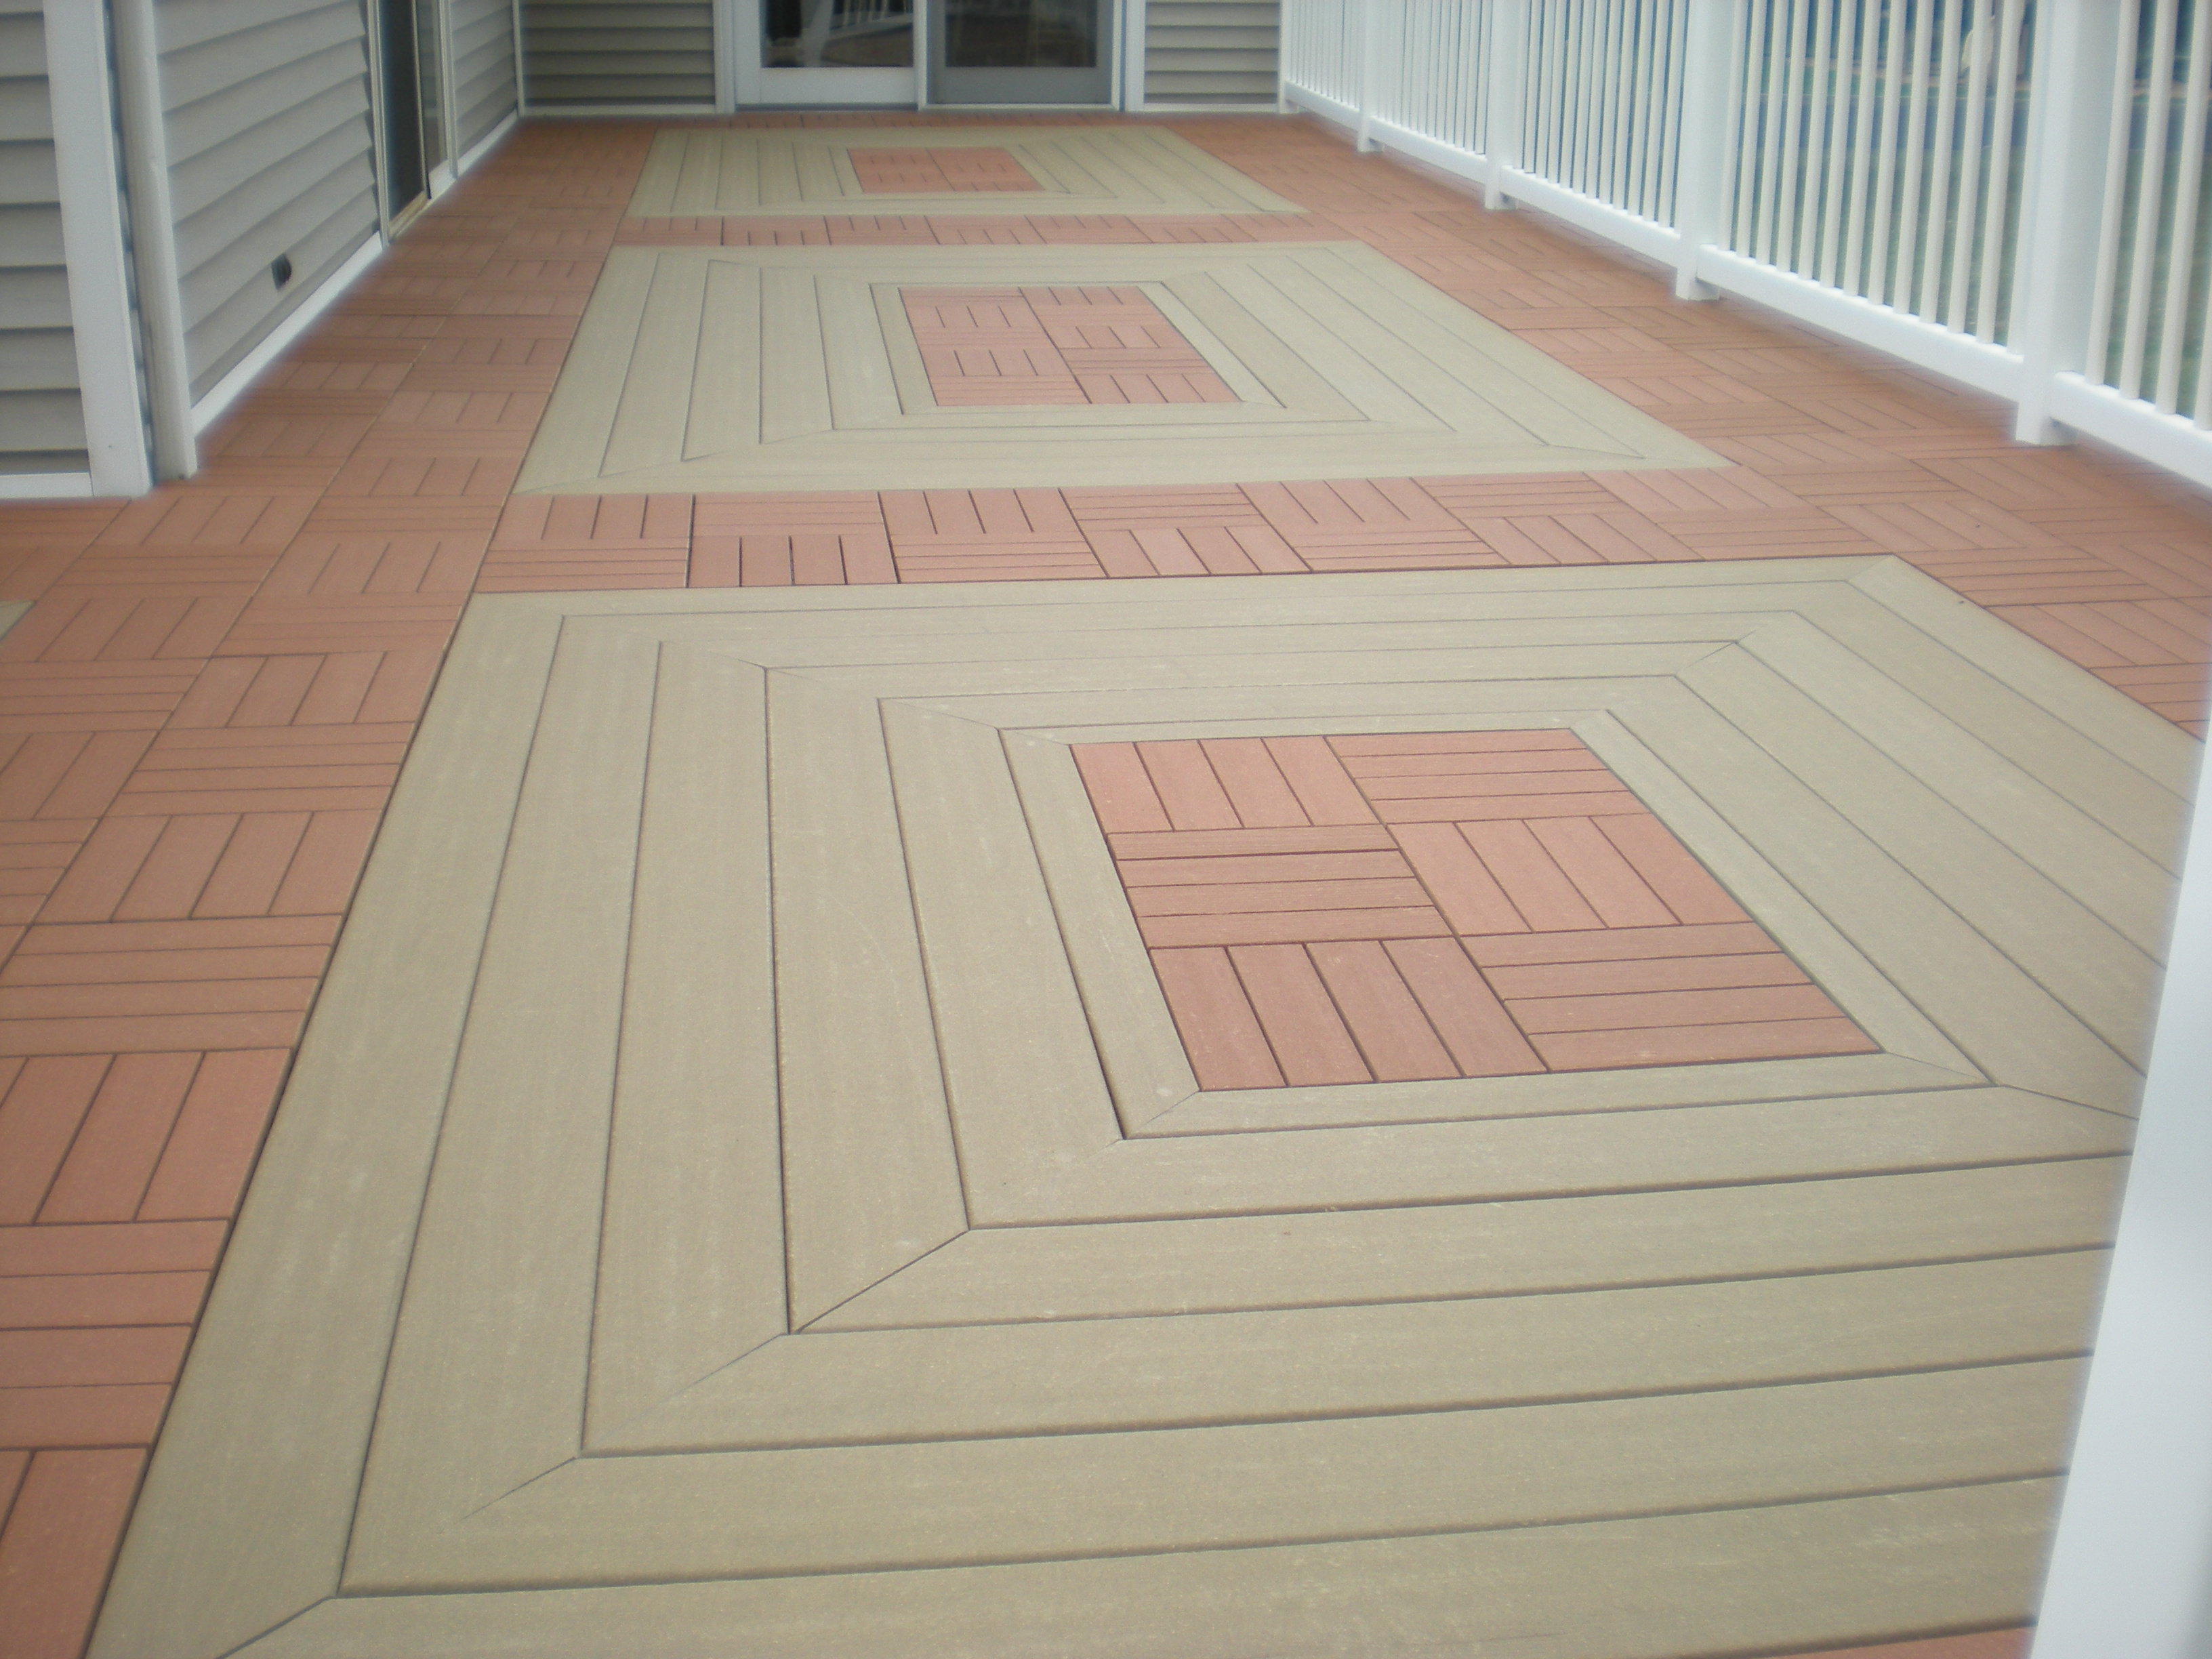 Composite Deck Tiles It 39s A Snap Ecoshield Tm Deck Tiles Video Clip Shows